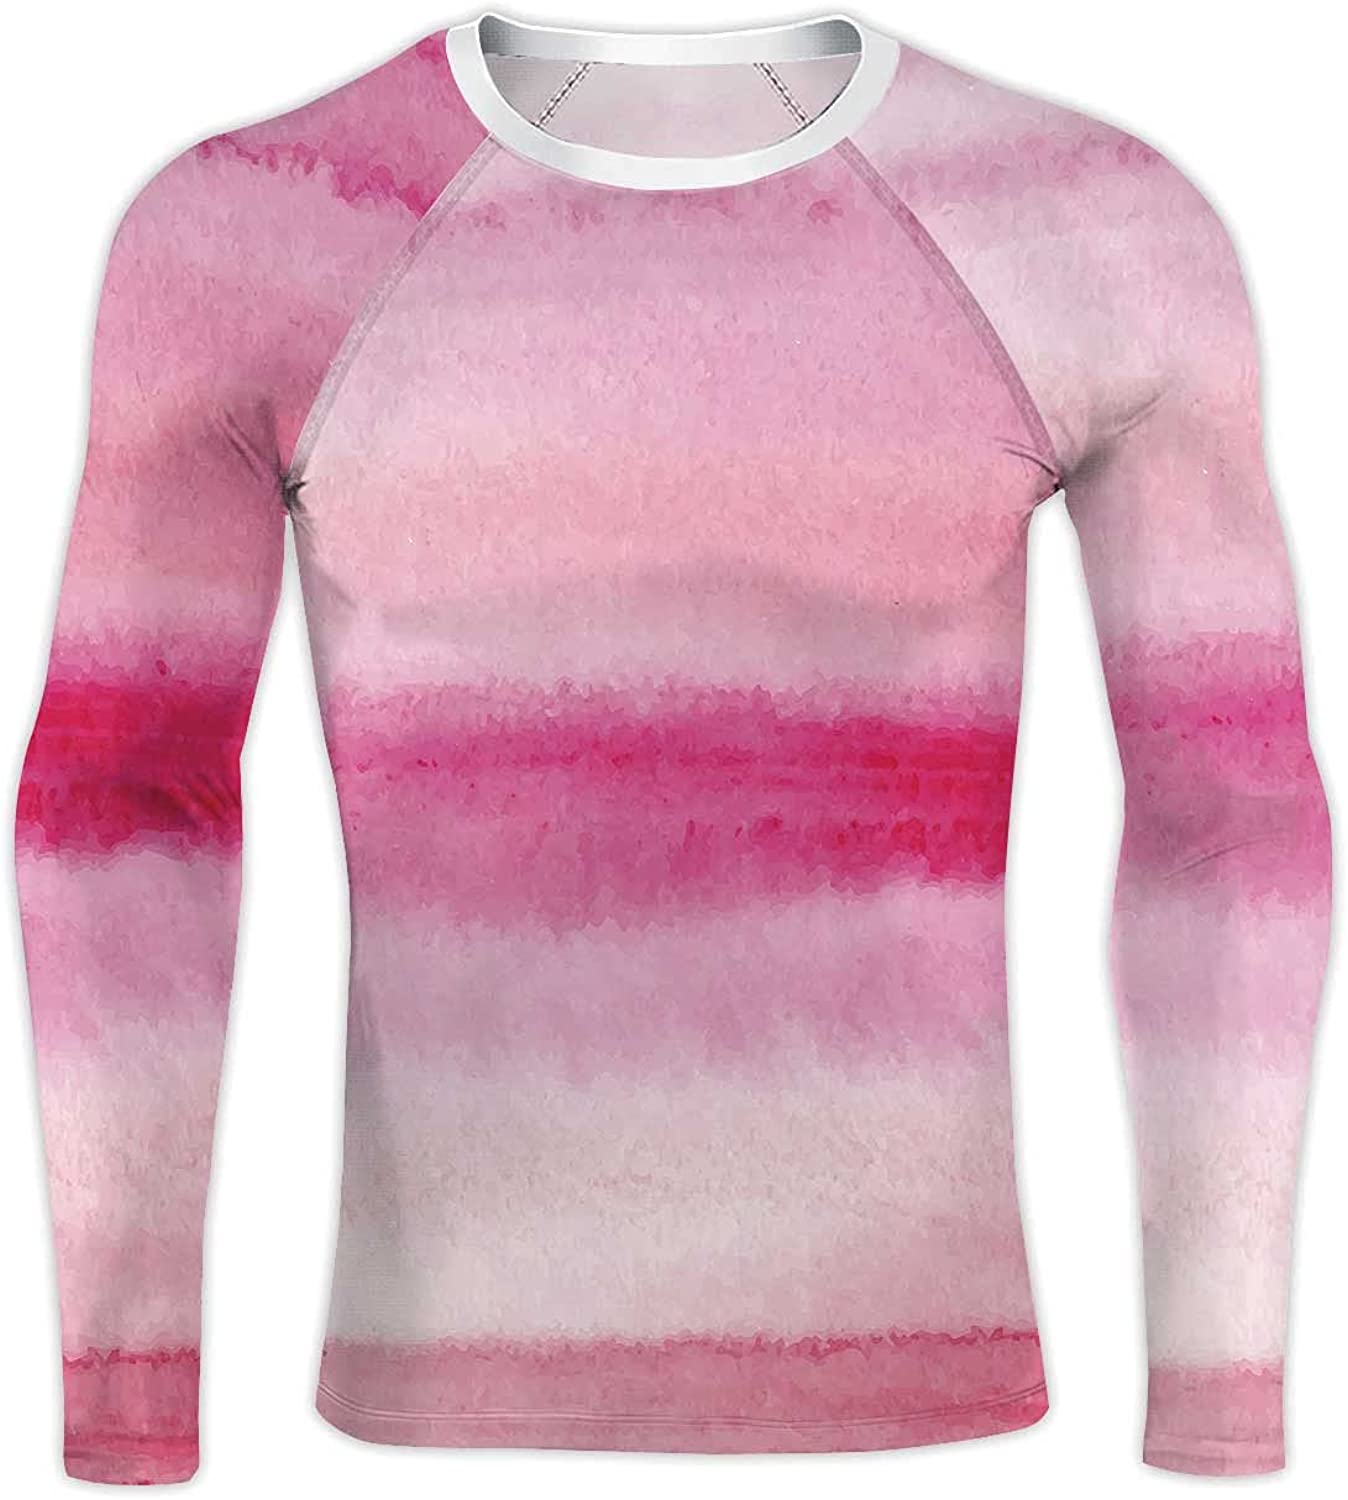 Tstyrea Compression Baselayer 25% OFF Tops Many popular brands Long Hand Dn T-Shirts Sleeve